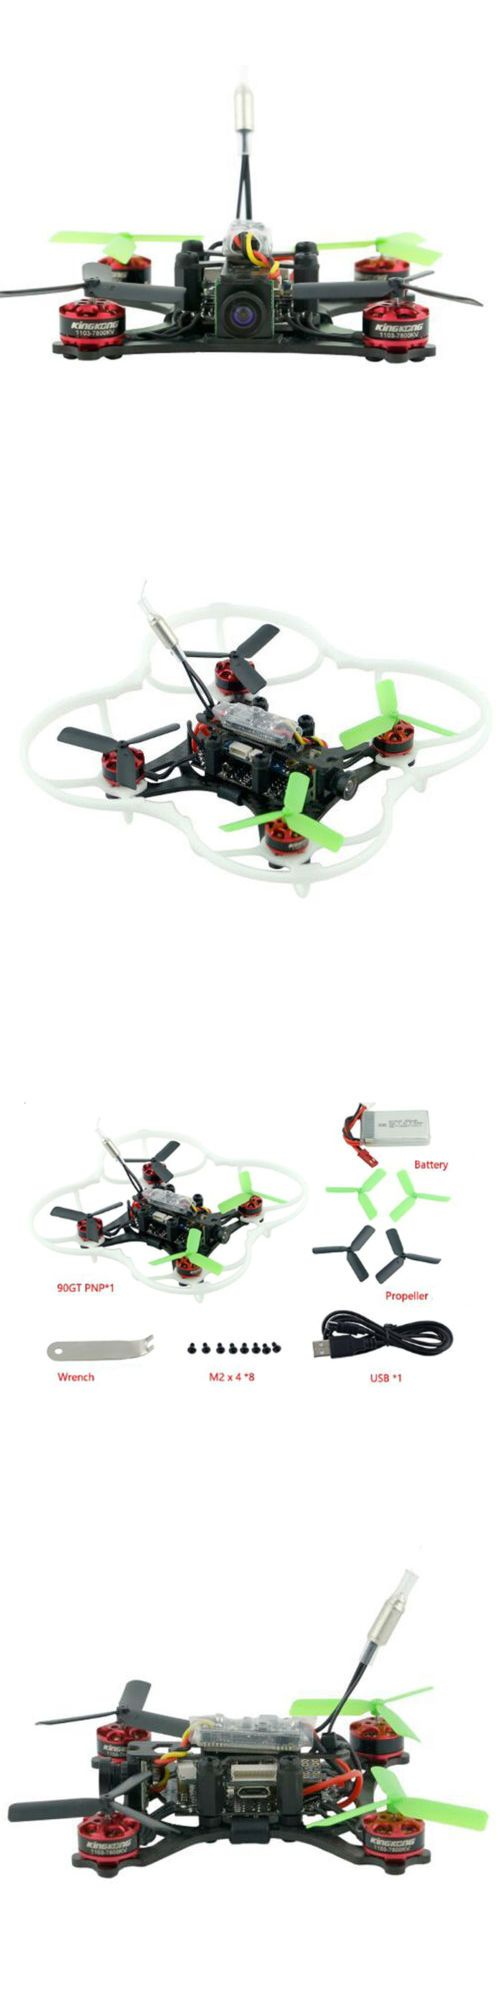 Quadcopters and Multicopters 182185: 90Gt Racing Rc Drone + Dsm2 Receiver Micro Flight 1103 Brushless Moto -> BUY IT NOW ONLY: $79.91 on eBay!